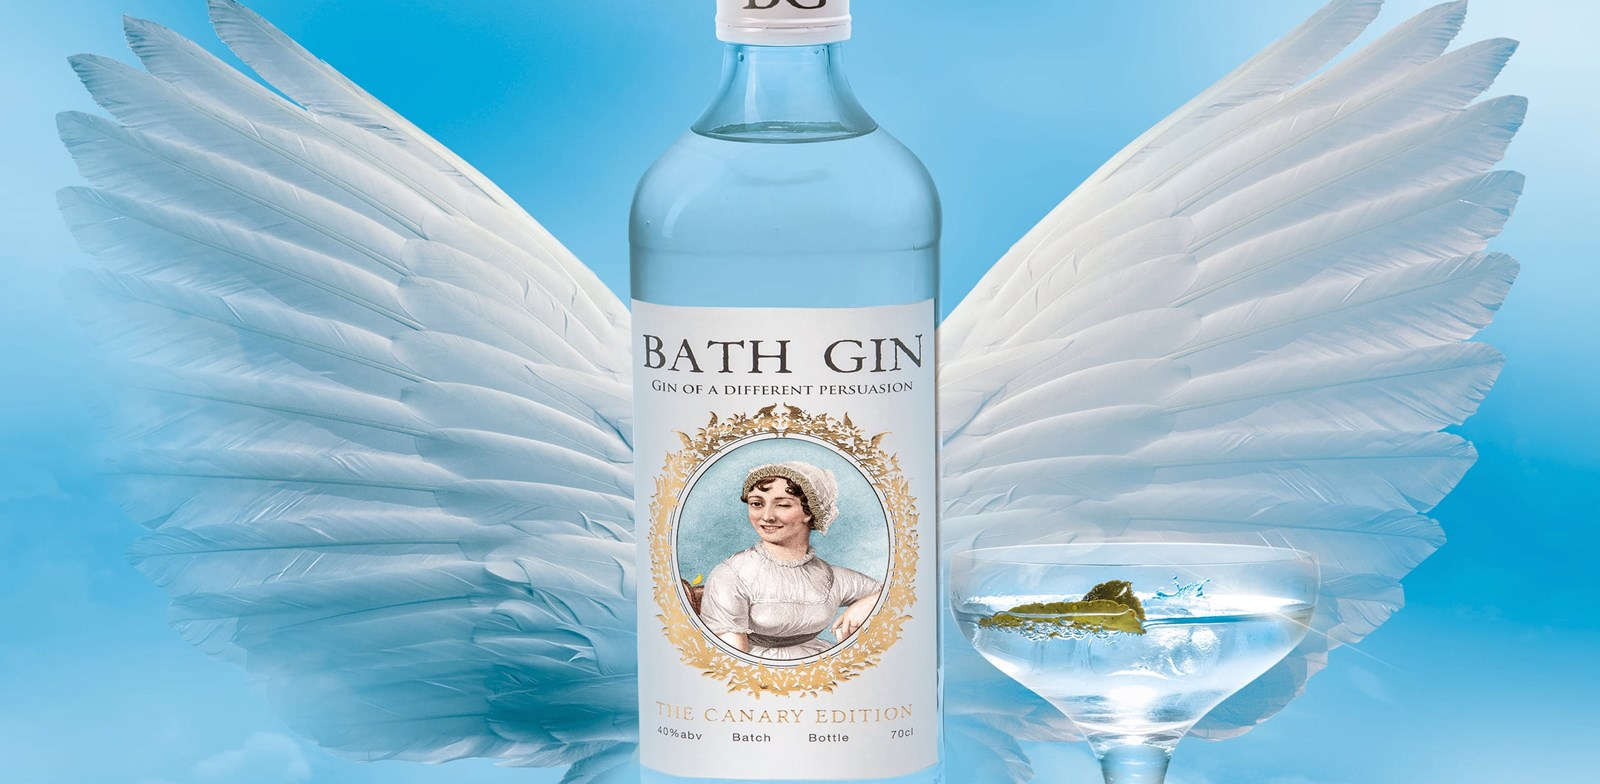 Bath Gin – Gin of a different persuasion